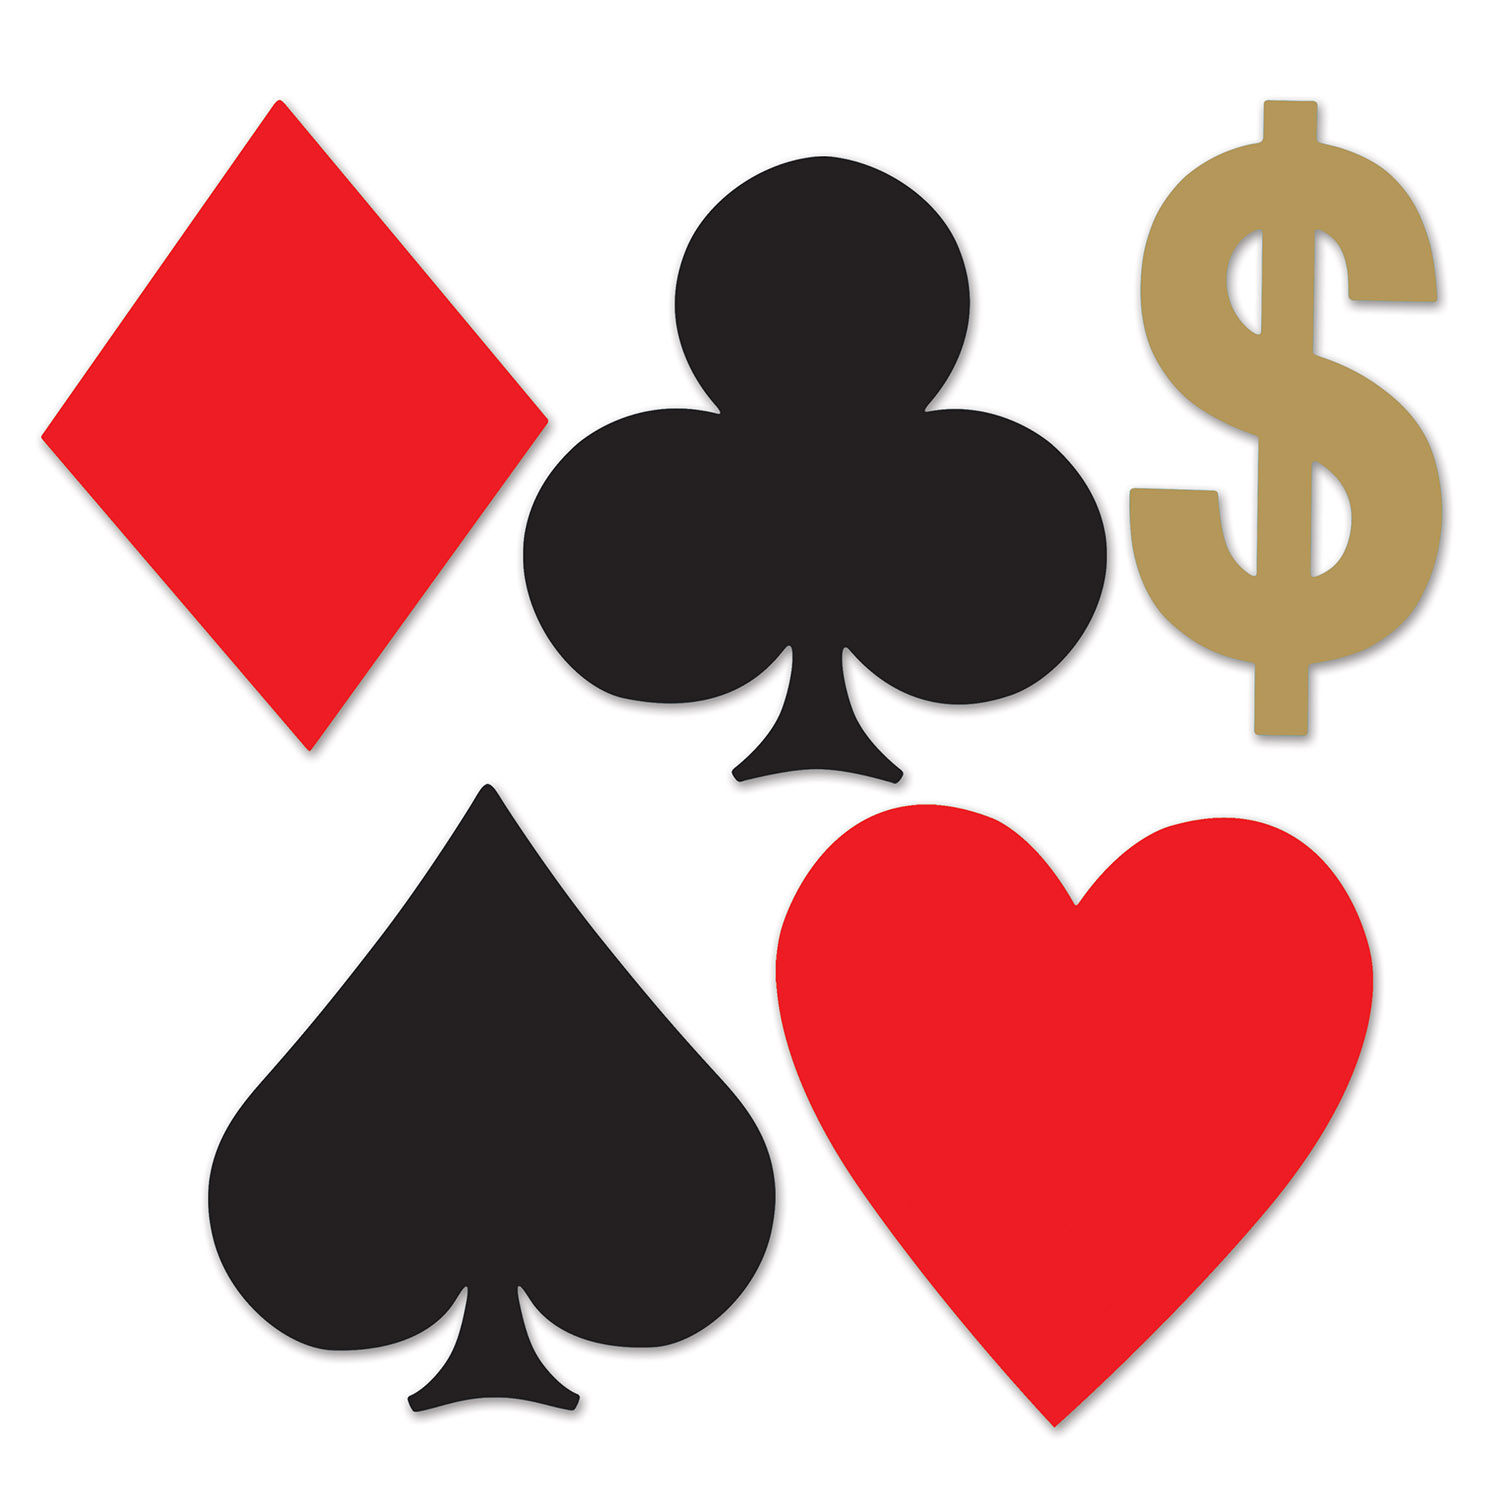 "Mini ""Card Suit"" Cutouts (Pack of 240) Card Cutouts, Poker decorations, Casino theme, Birthday ideas, Wholesale party supplies, Inexpensive decorations, Wall decorations, Playing cards, Diamonds, Clubs, Spades, Hearts, Deck of cards"